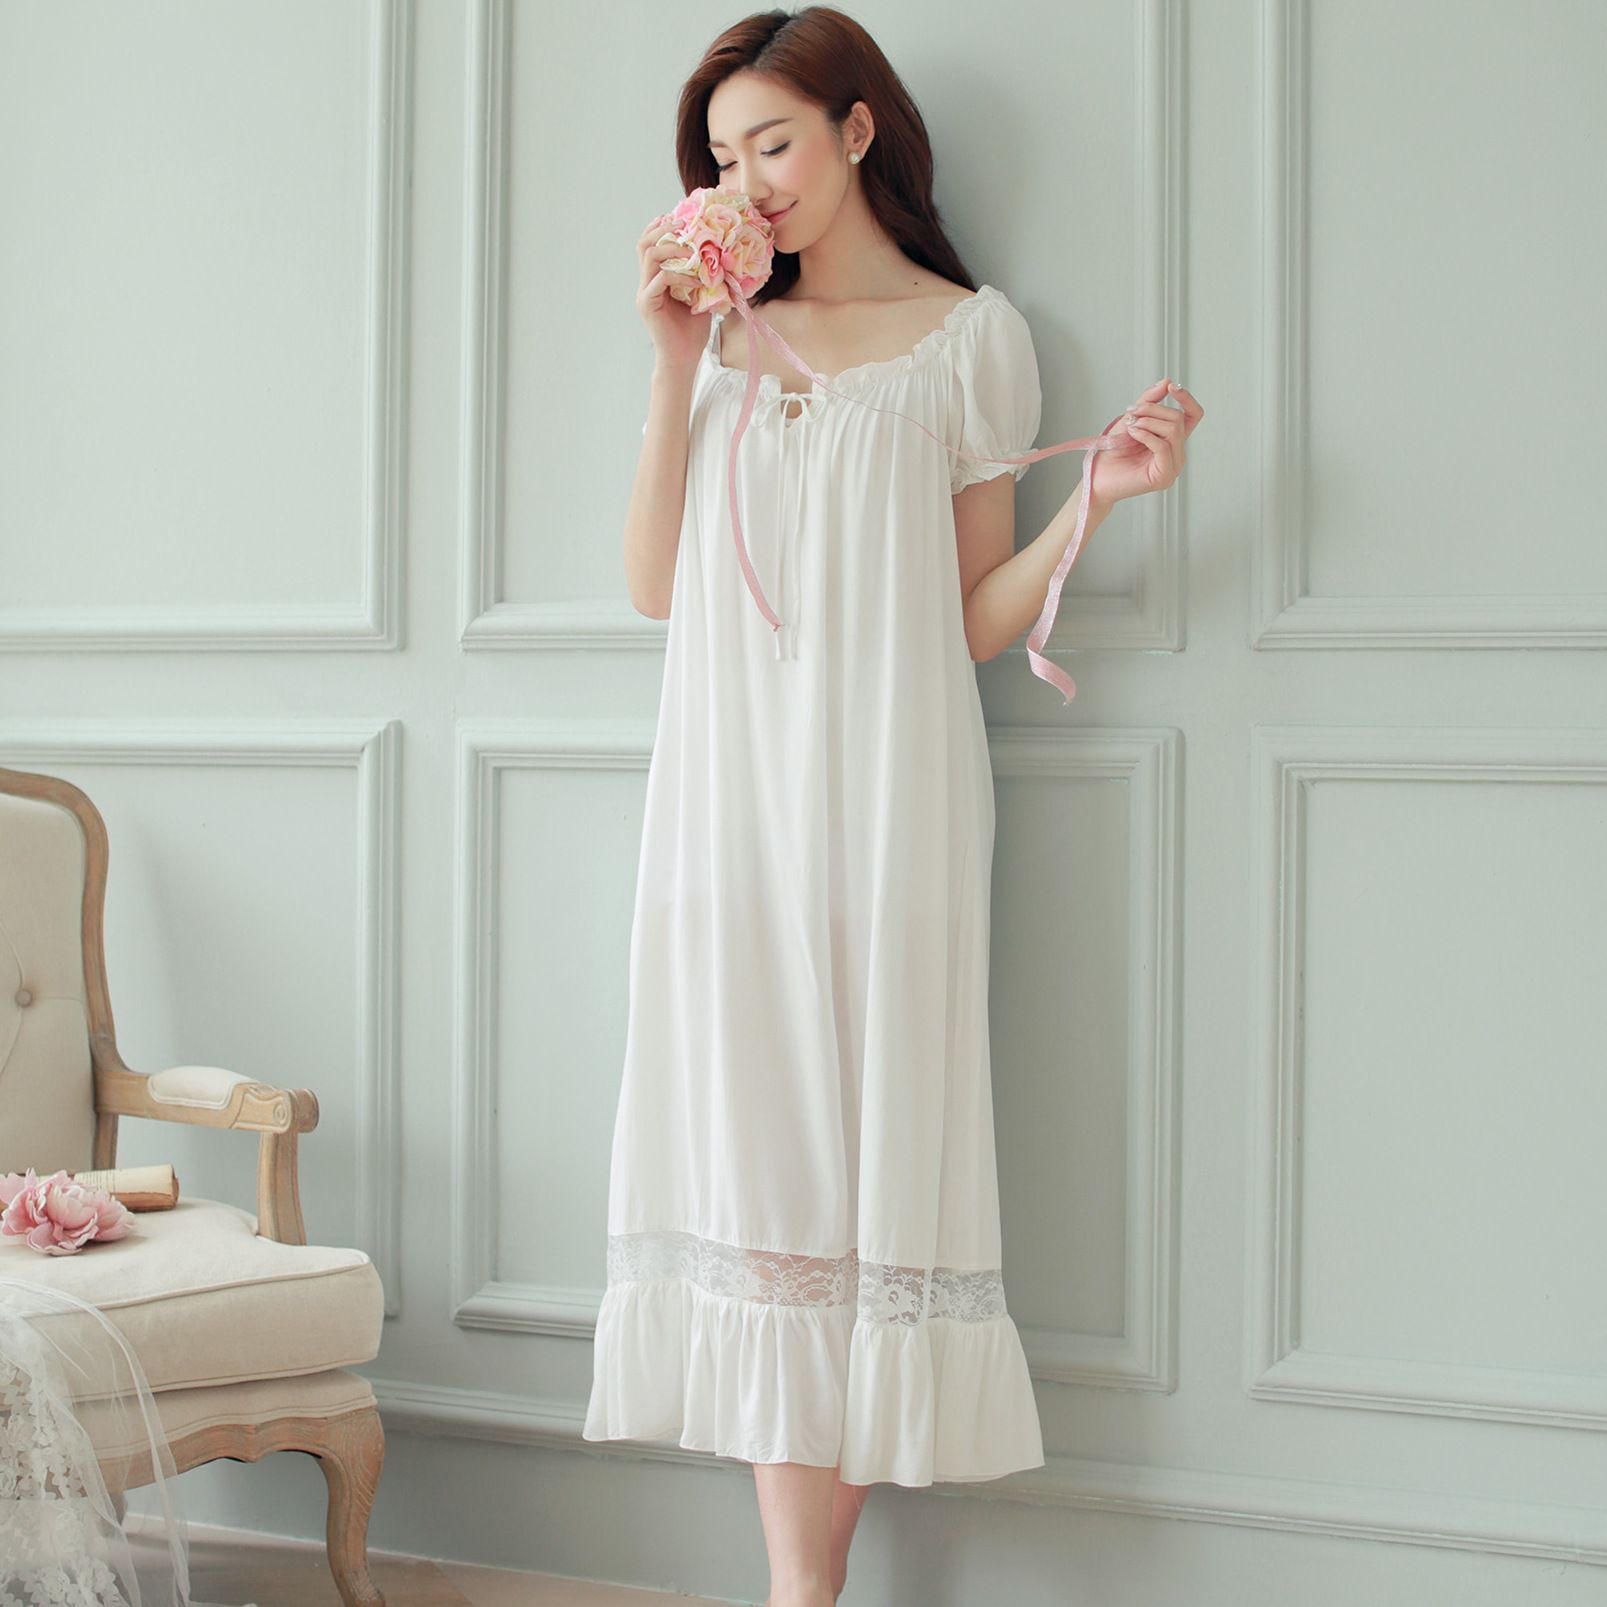 d6d36b1f2 Hot Womens Long Sleeping Dress White Nightgown Short Sleeve Summer  Nightdress Elegant Vintage Nightgowns Home Dress For Sleeping-in Nightgowns    Sleepshirts ...